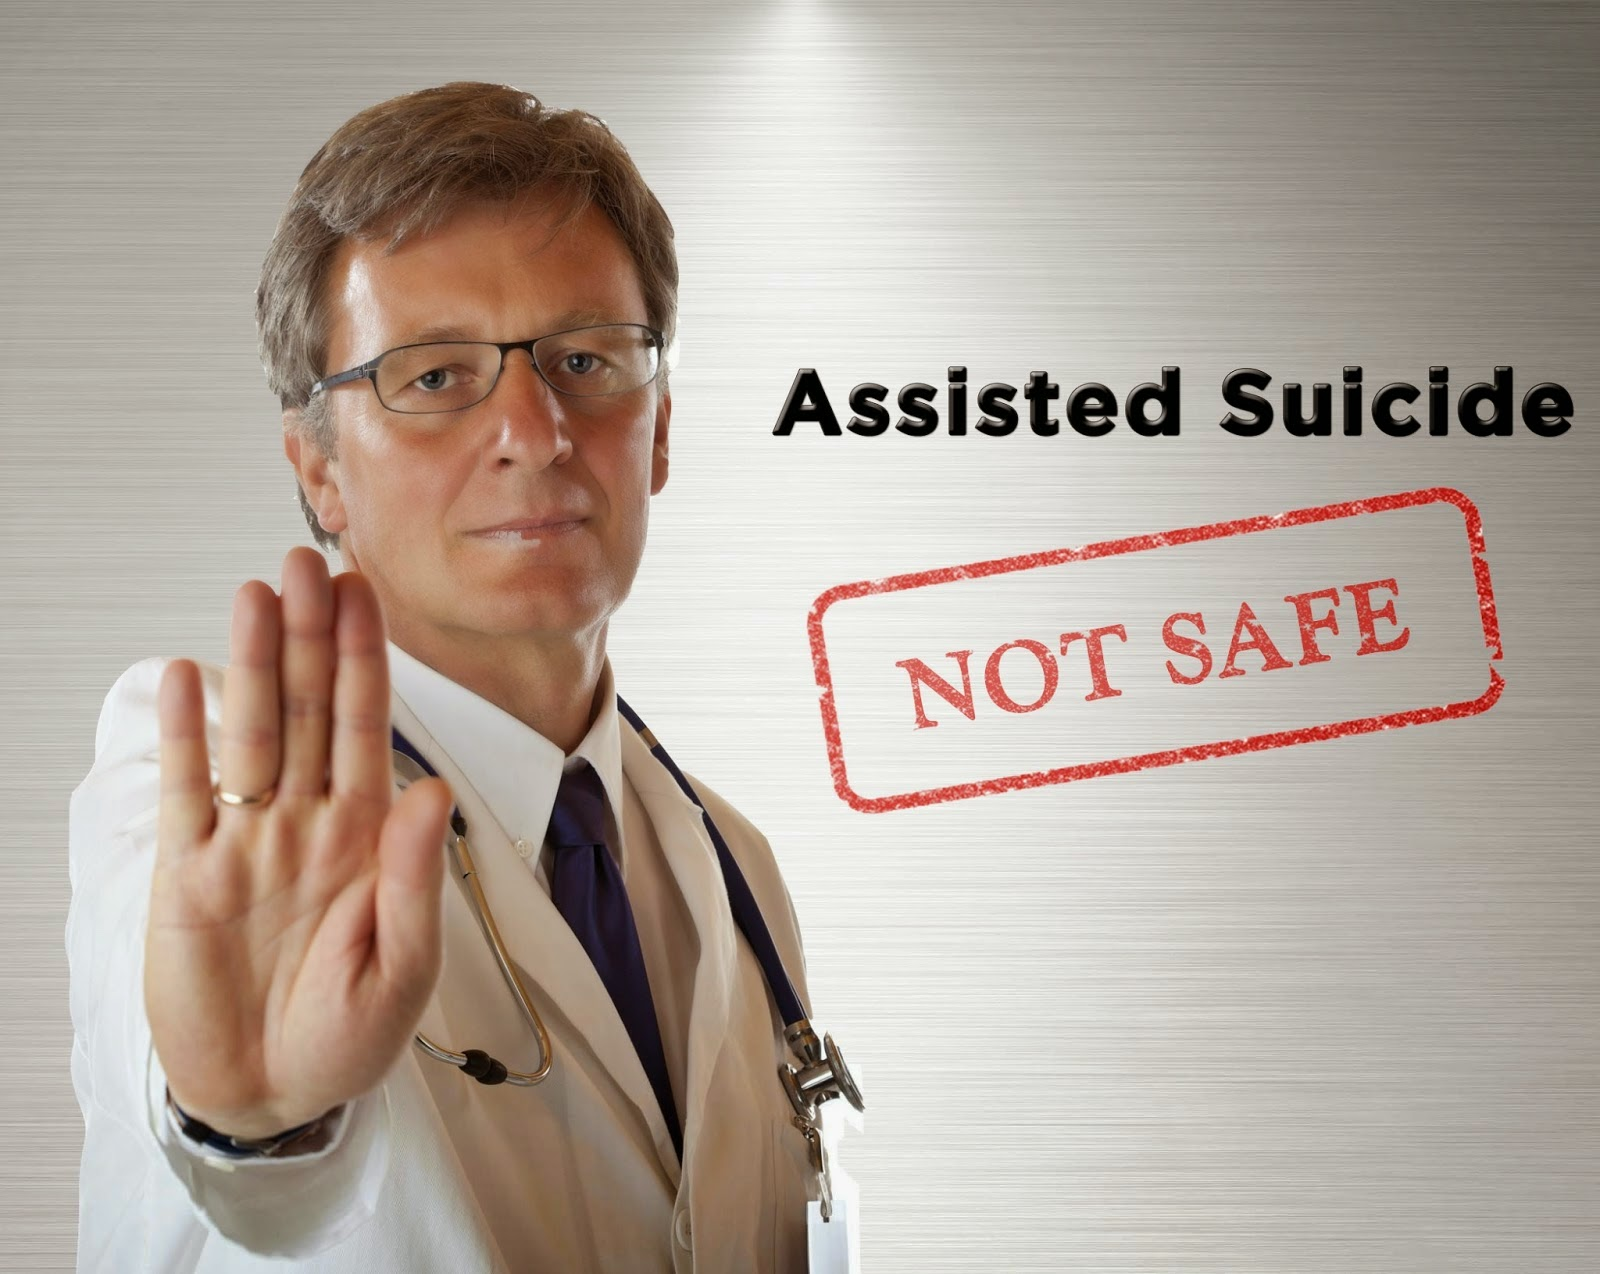 assisted suicide or euthanasia Euthanasia and assisted suicide were legalized in the country in april, 2009 the netherlands netherlands is the first country in the world formally to legalise euthanasia physician-assisted suicide is legal under the same conditions as euthanasia physician-assisted suicide became allowed under the act of 2001 which states the specific.